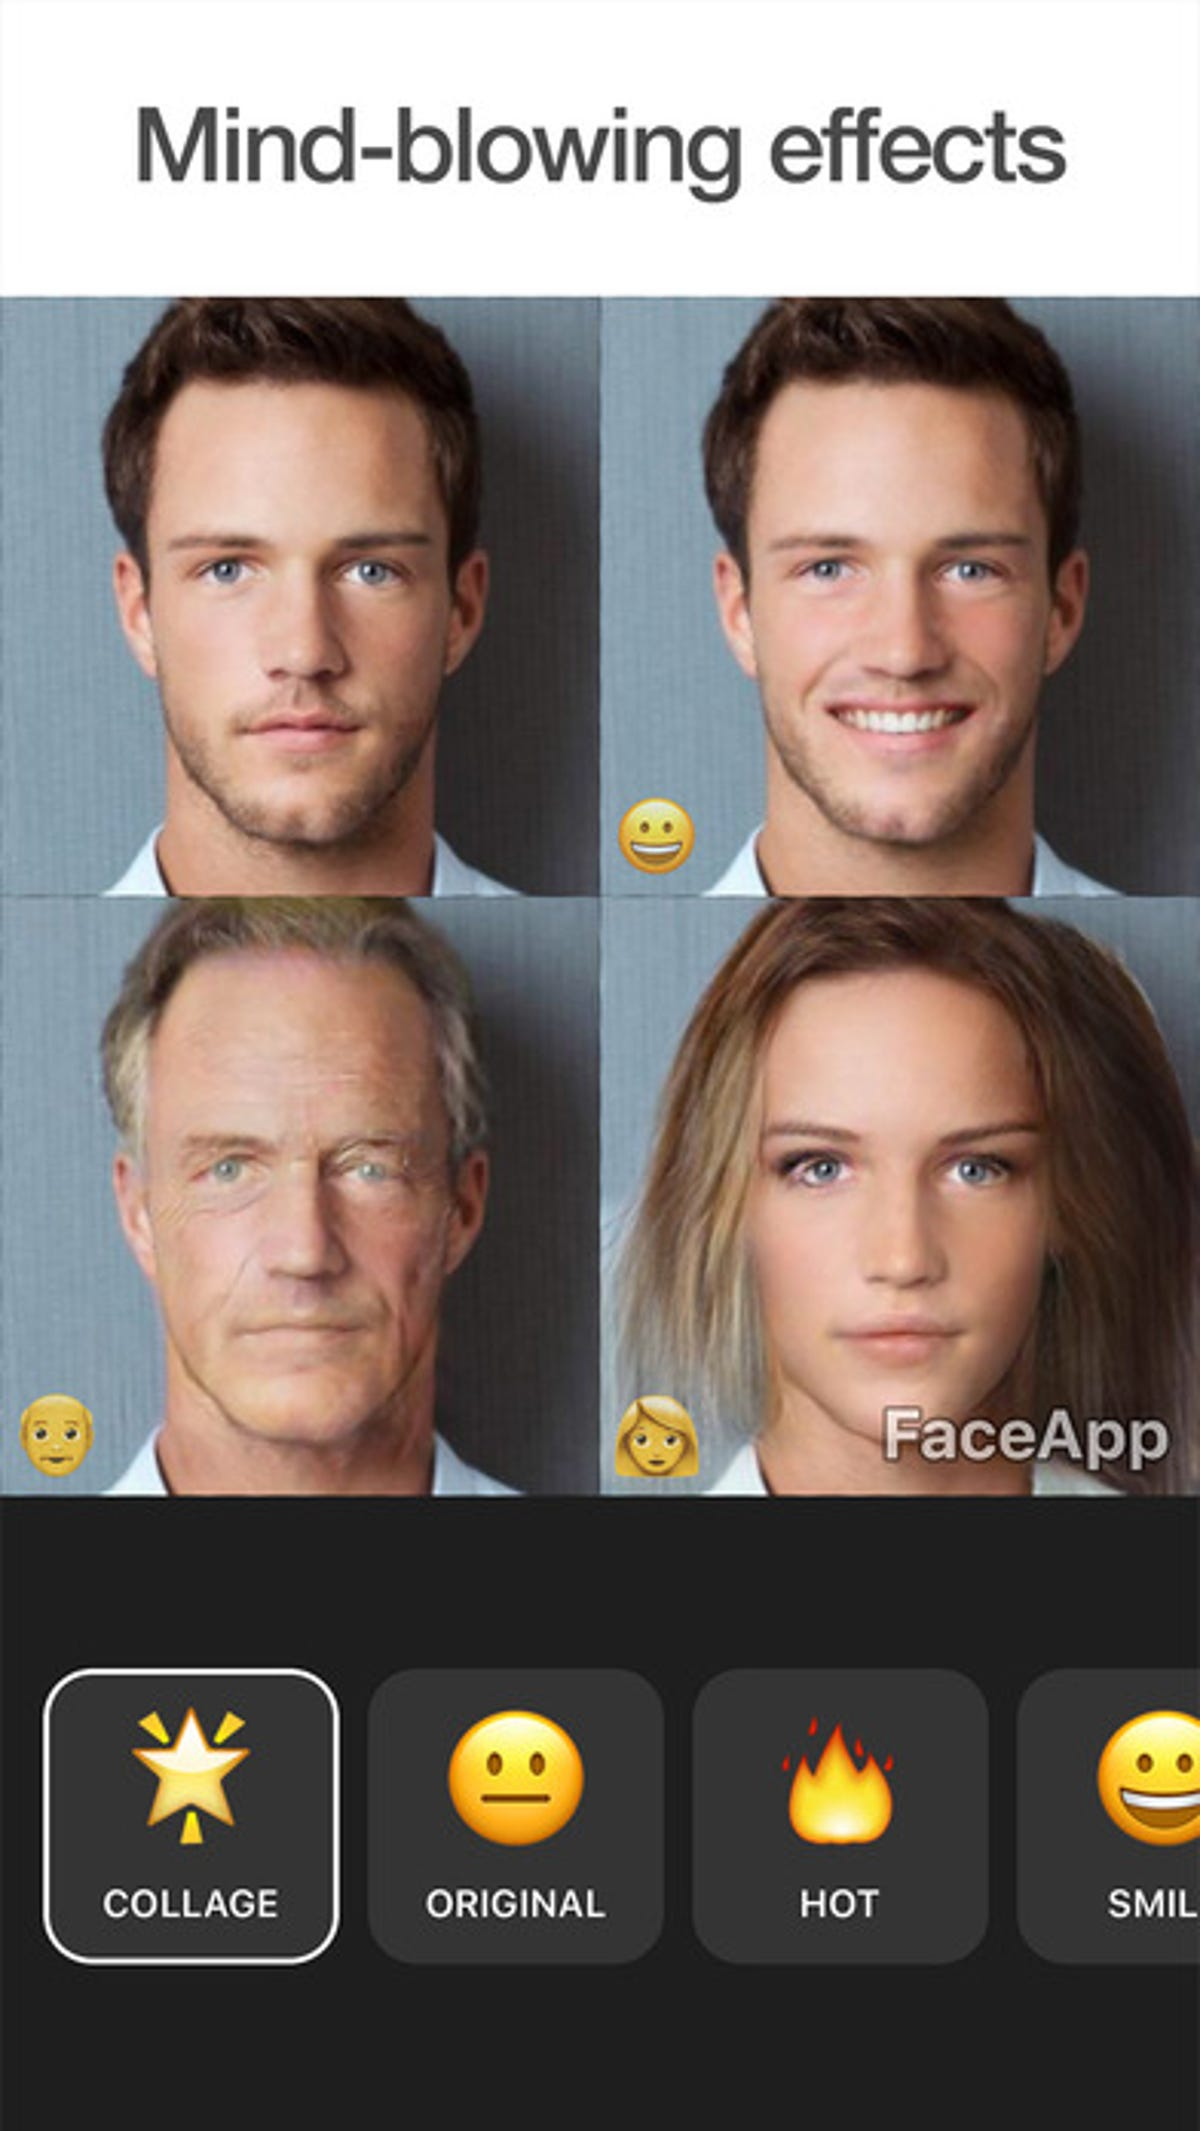 This is why people are talking about FaceApp